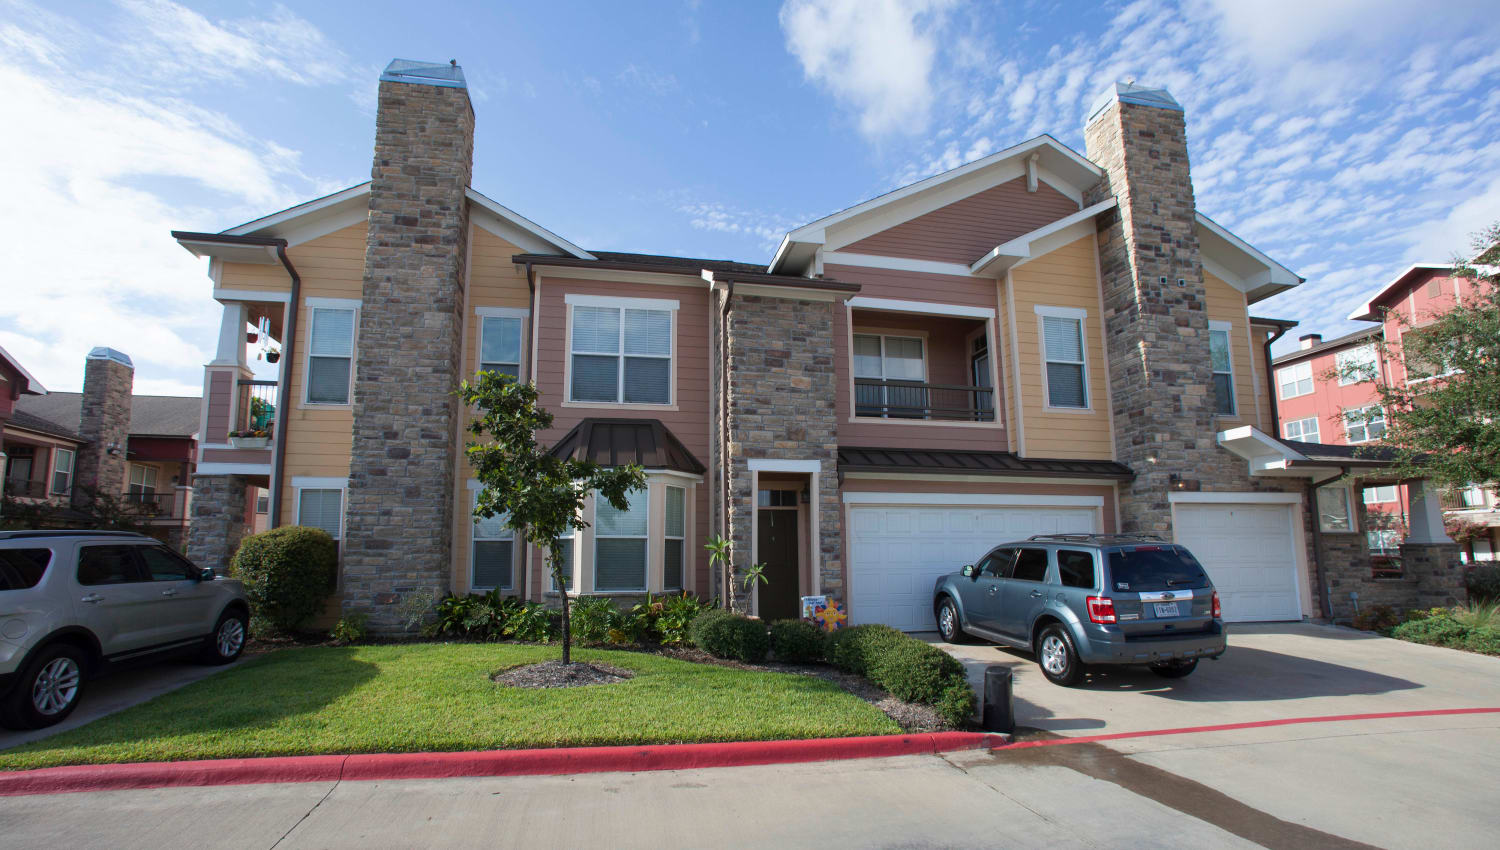 Townhomes with private garages attached at Olympus Katy Ranch in Katy, Texas